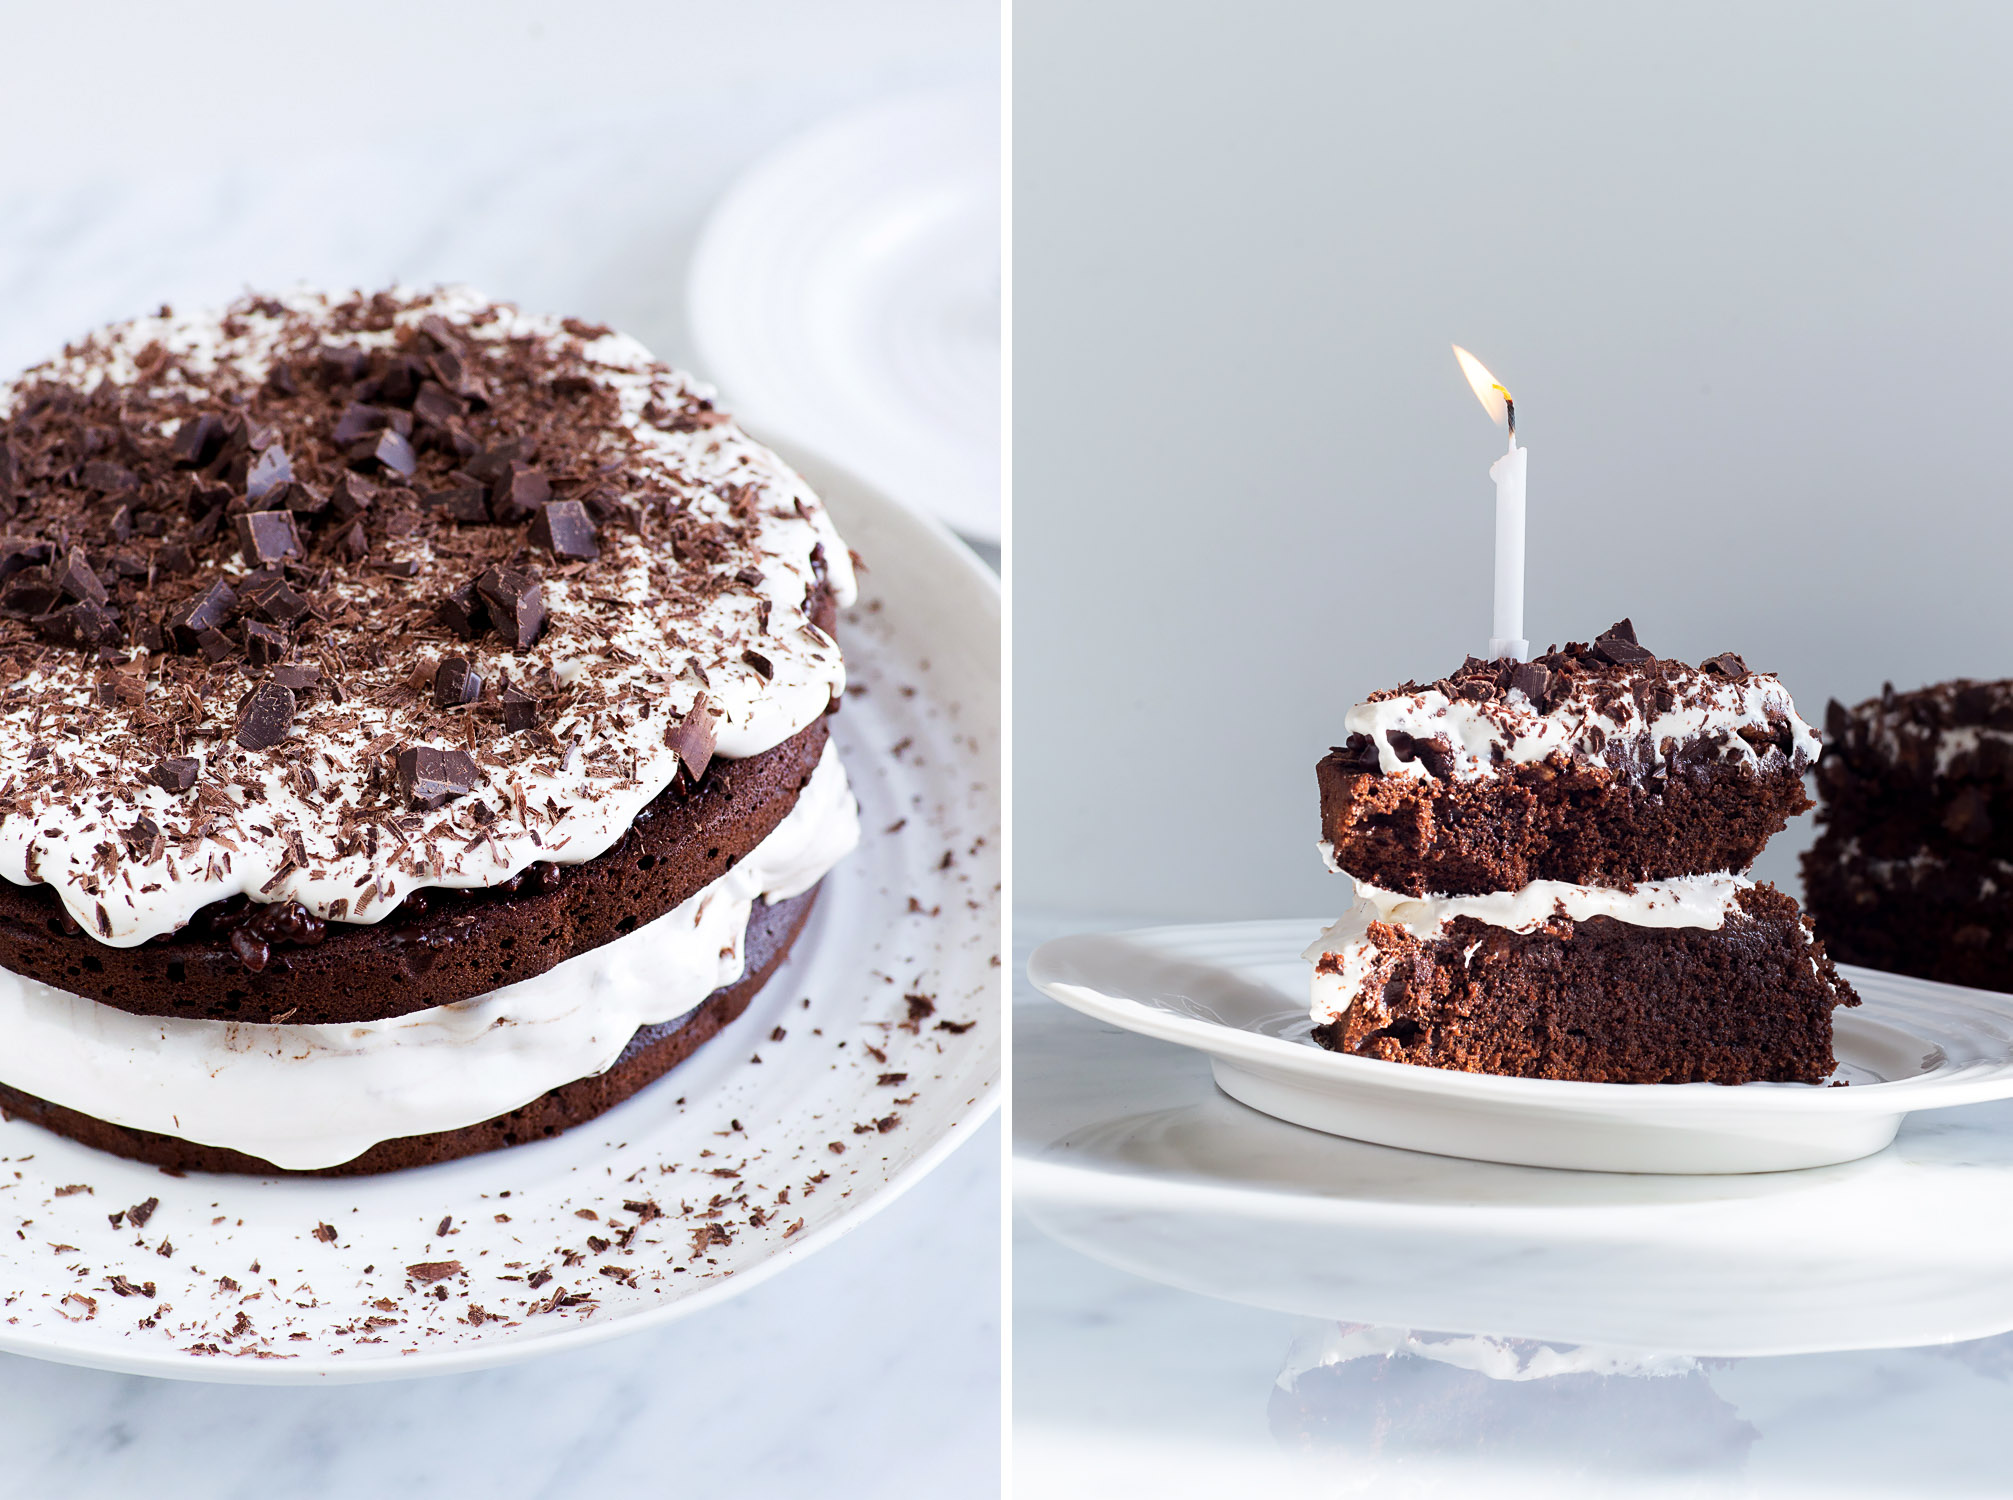 Chocolate Celebration Cake with Puffed Rice and Nougat Frosting - Recipe from Jamie Oliver Comfort Food | Mondomulia.com